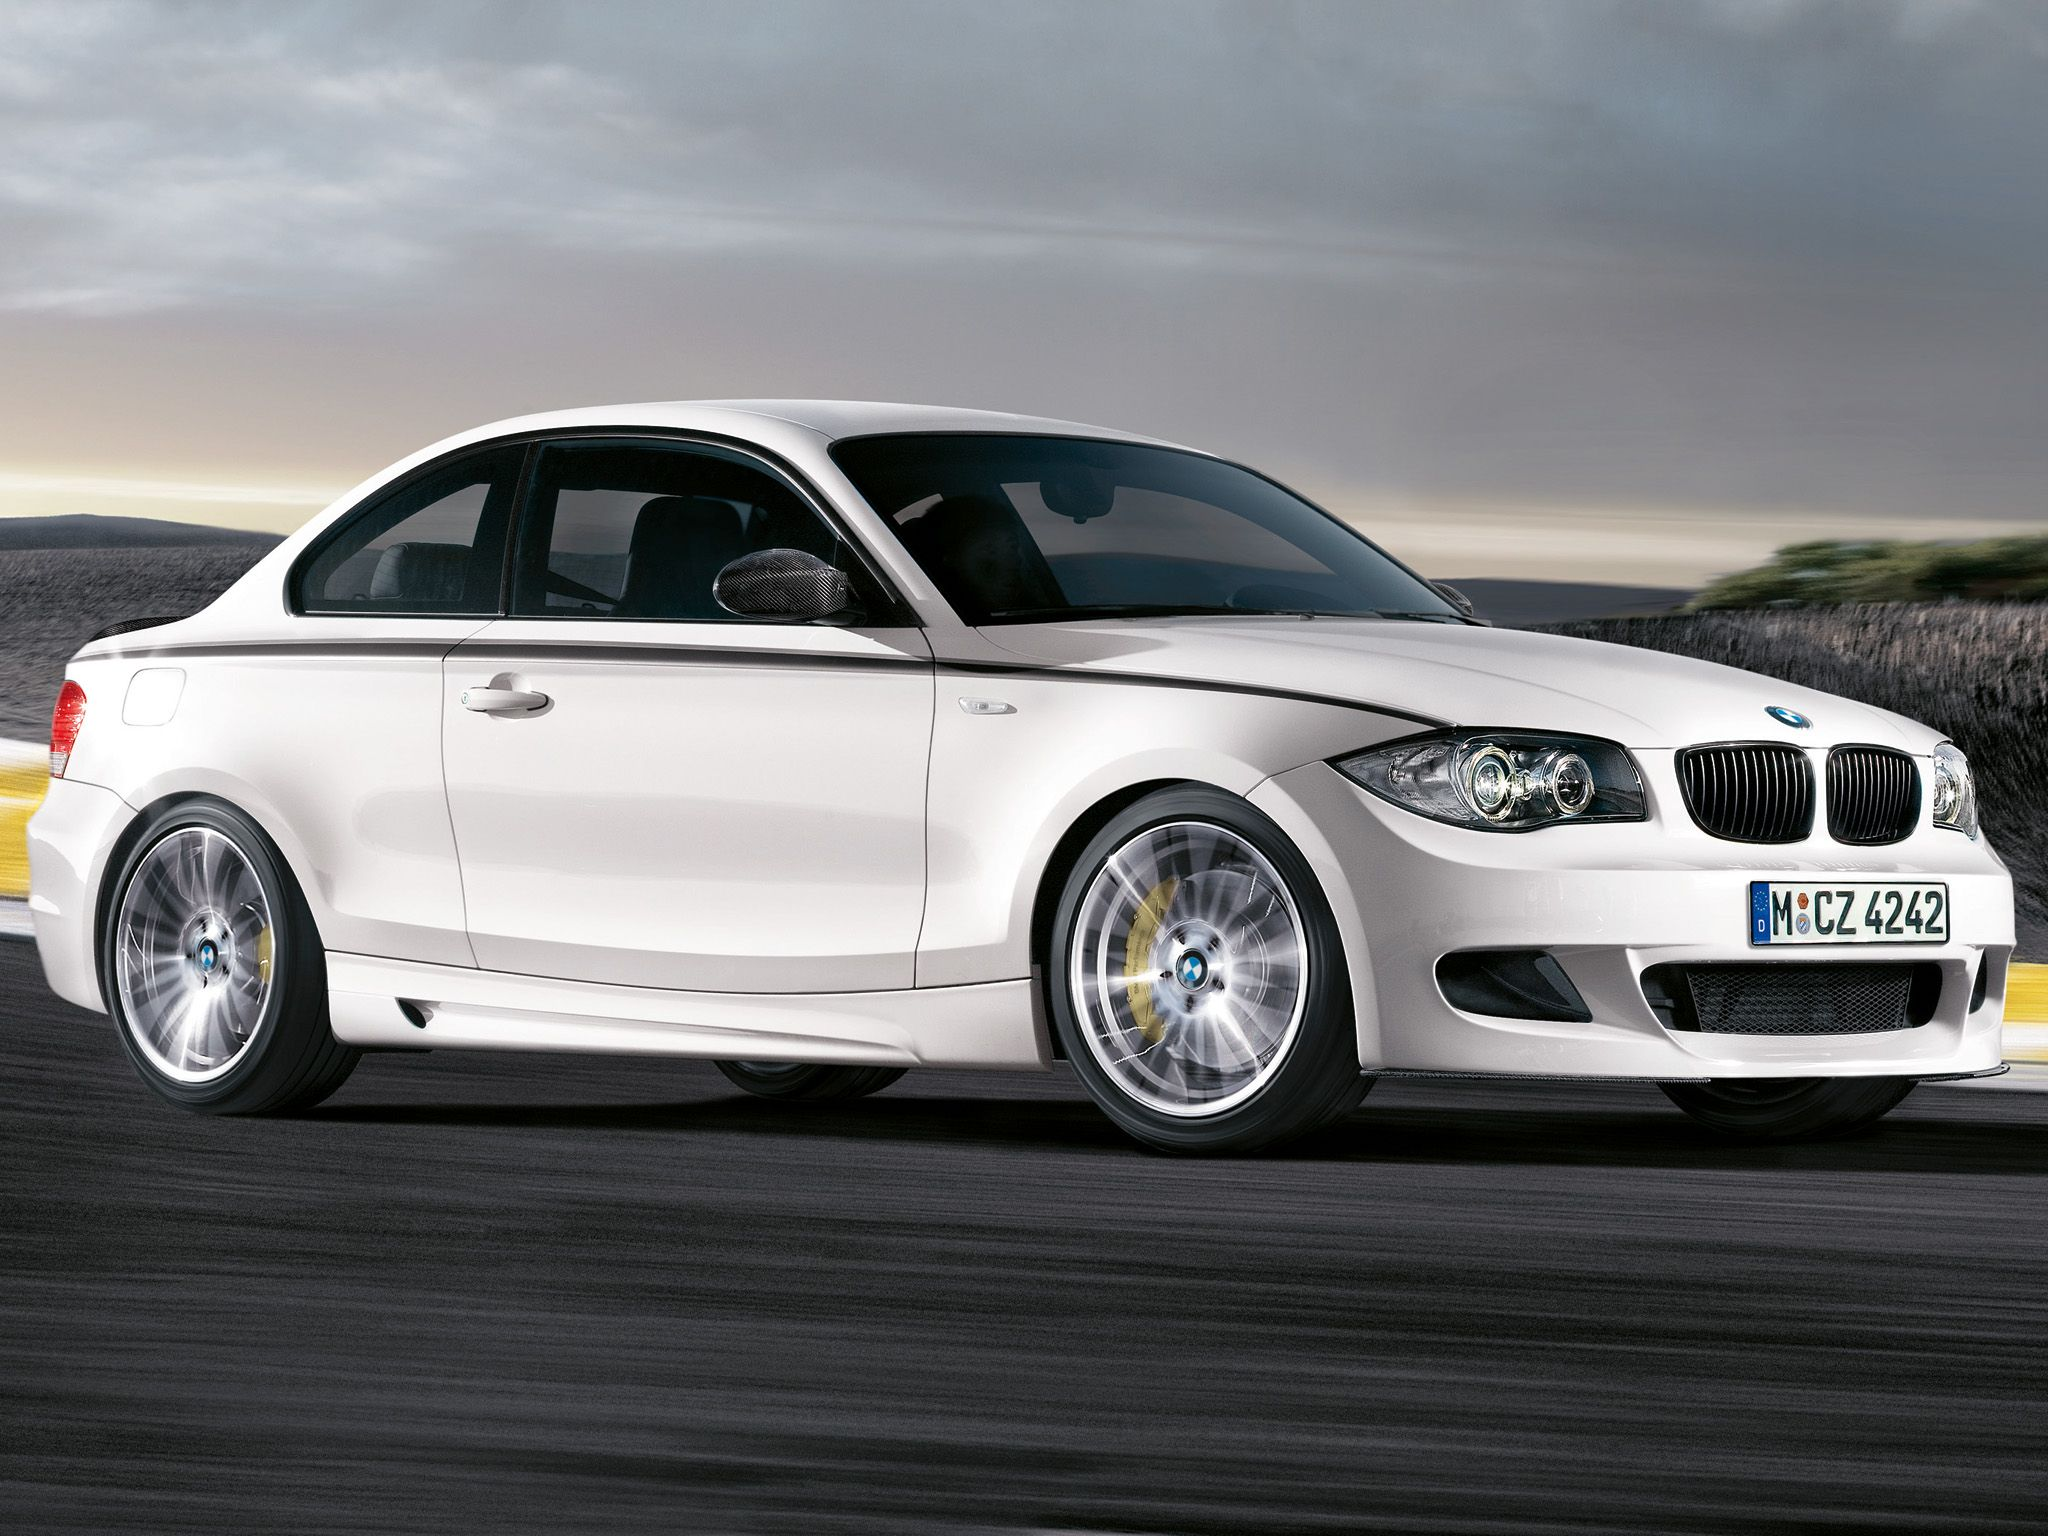 BMW i BMW performance cars tuning wallpaper x | HD Wallpapers ...